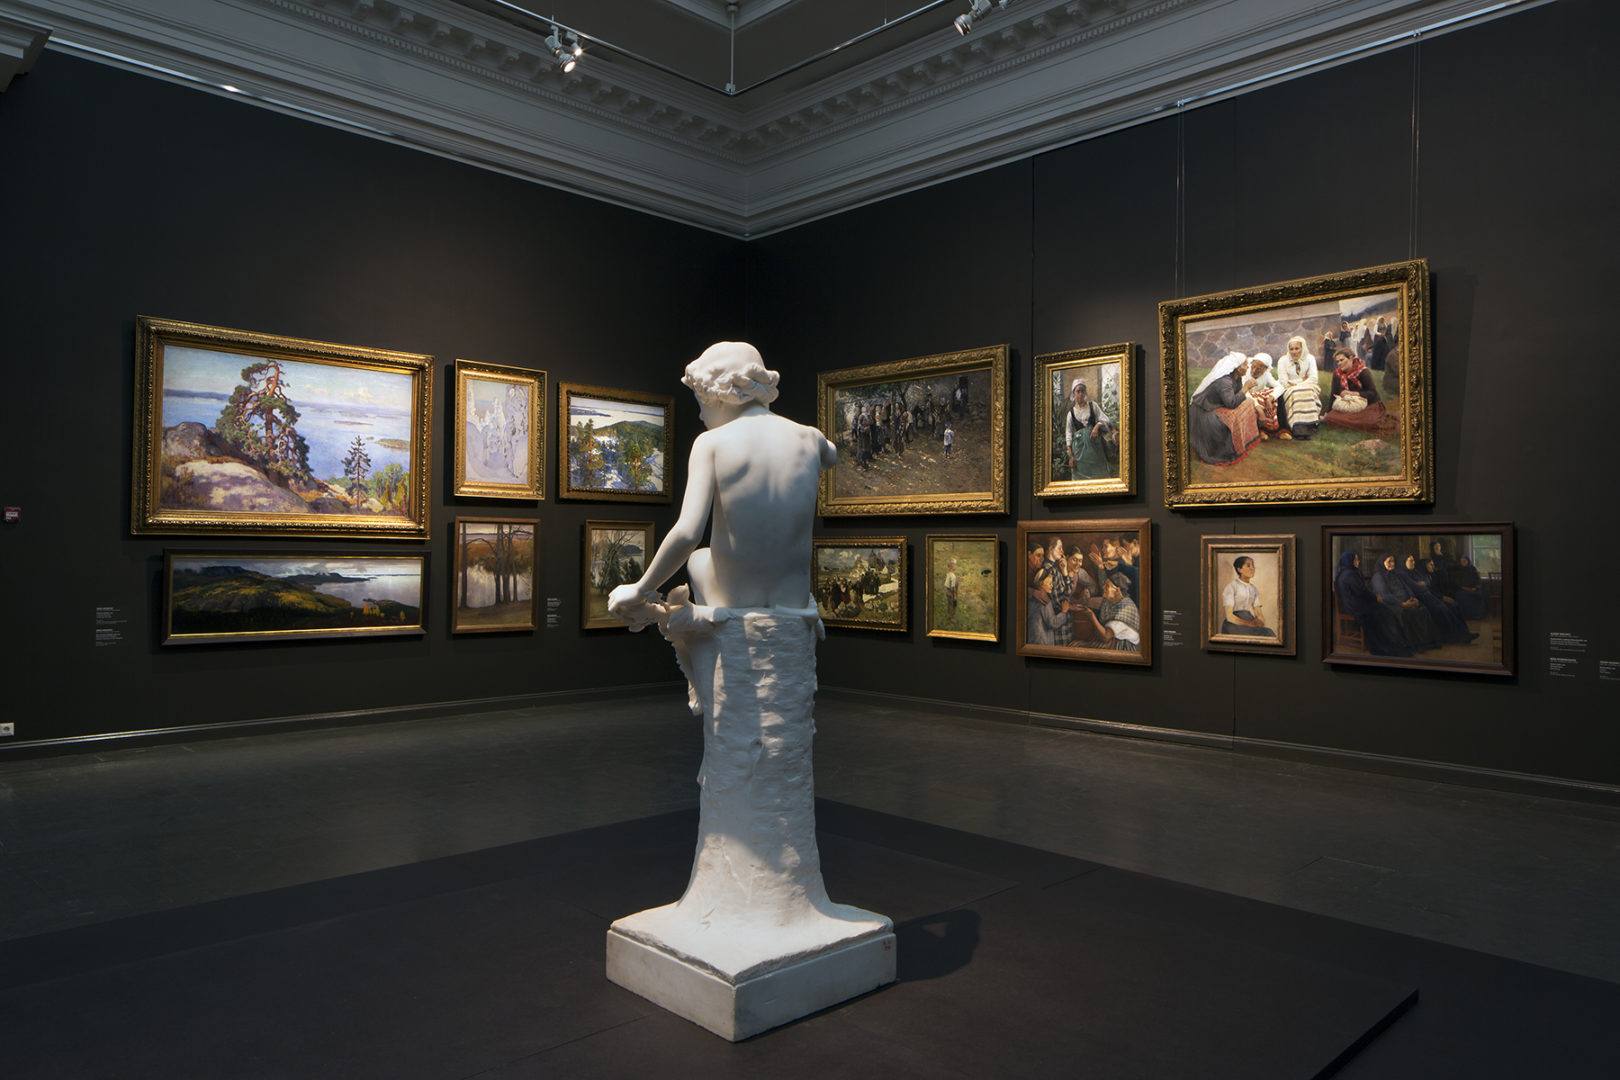 Stories of Finnish Art - Ateneum's collection display. Photo: Finnish National Gallery / Hannu Pakarinen